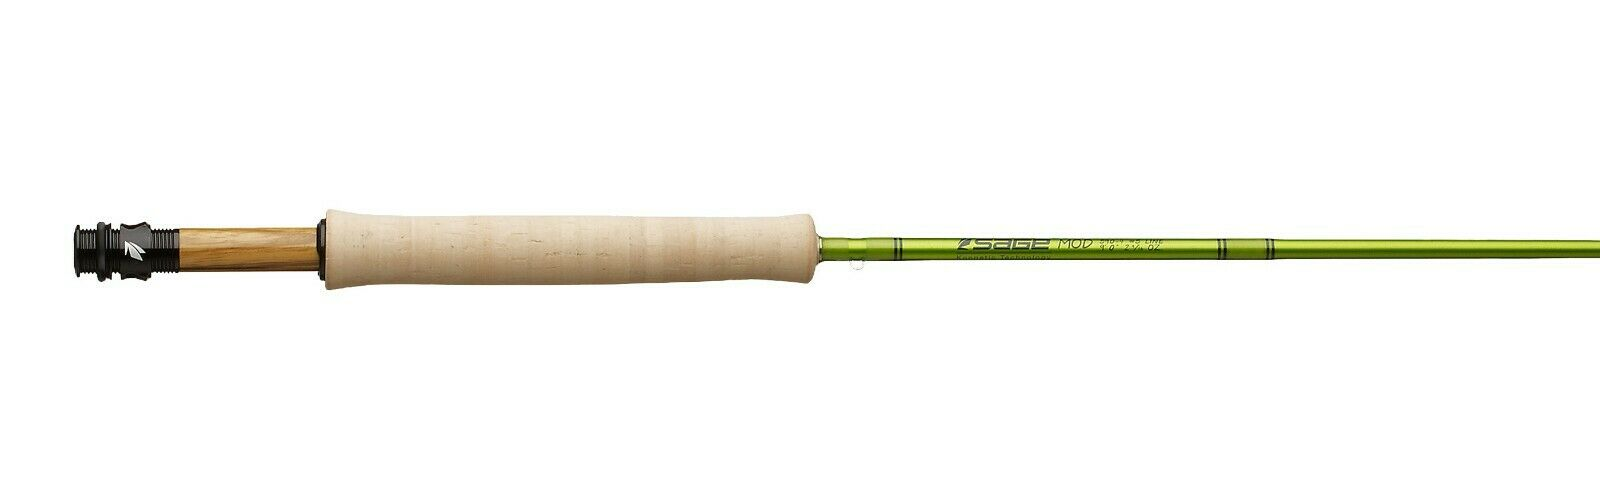 Sage Mod Fly Rod 690-4 Brand New   CLOSEOUT